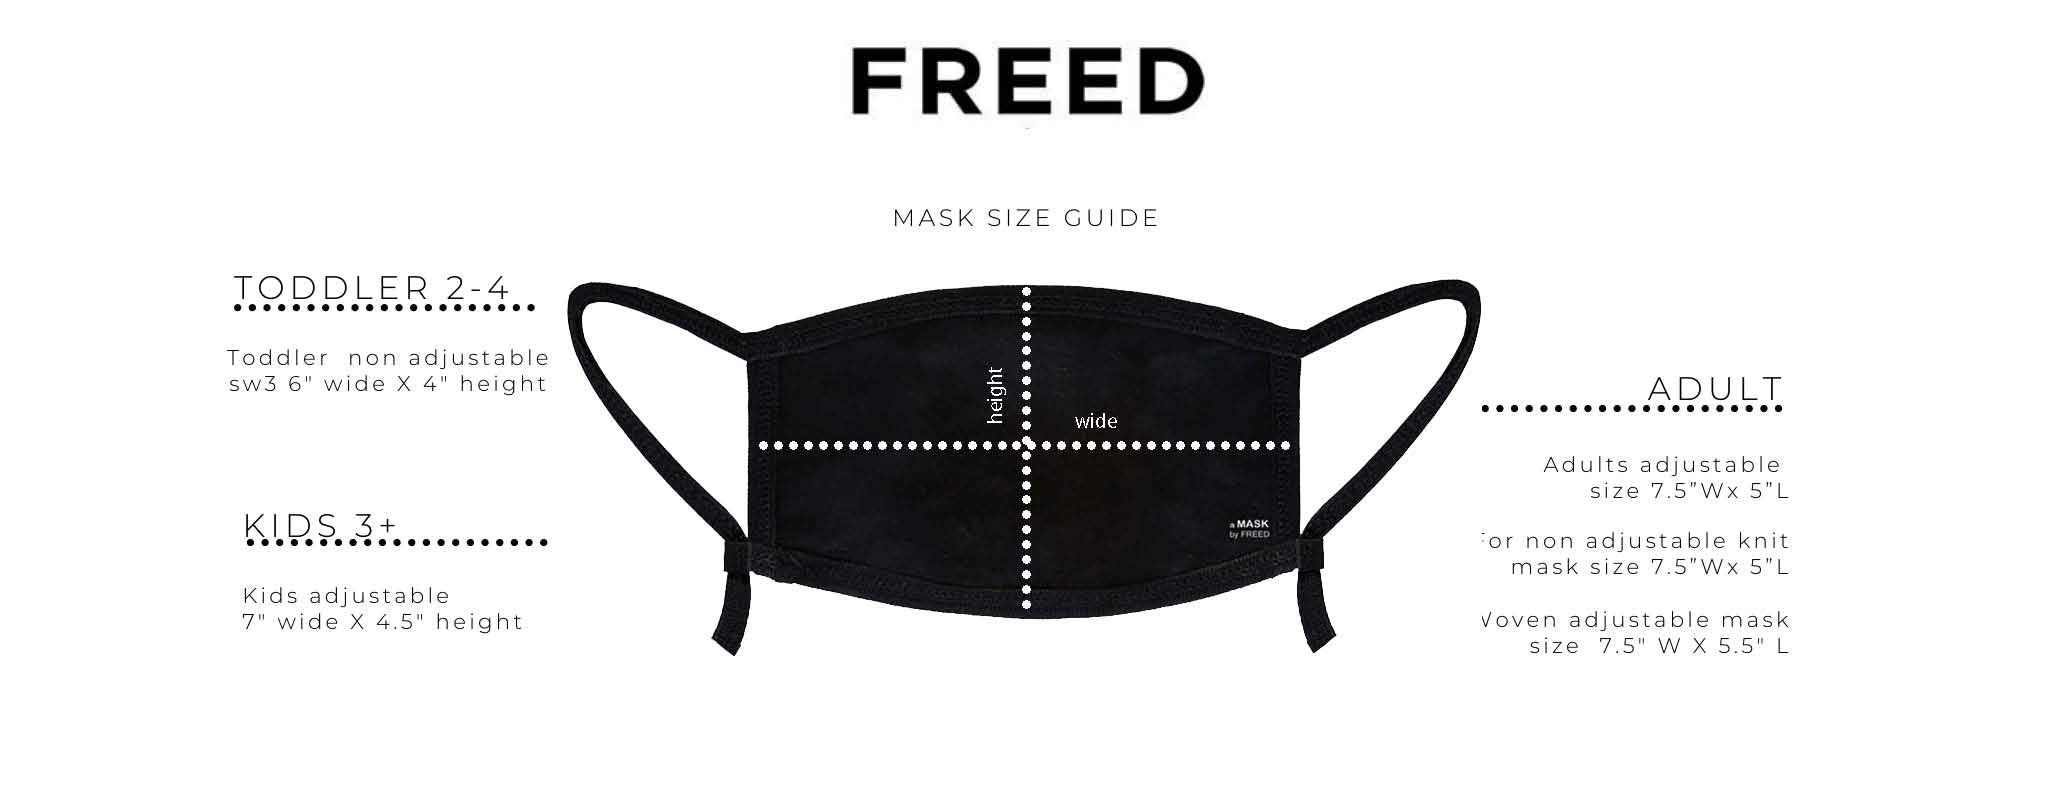 aMASK by FREED adult and kids face covering size guide